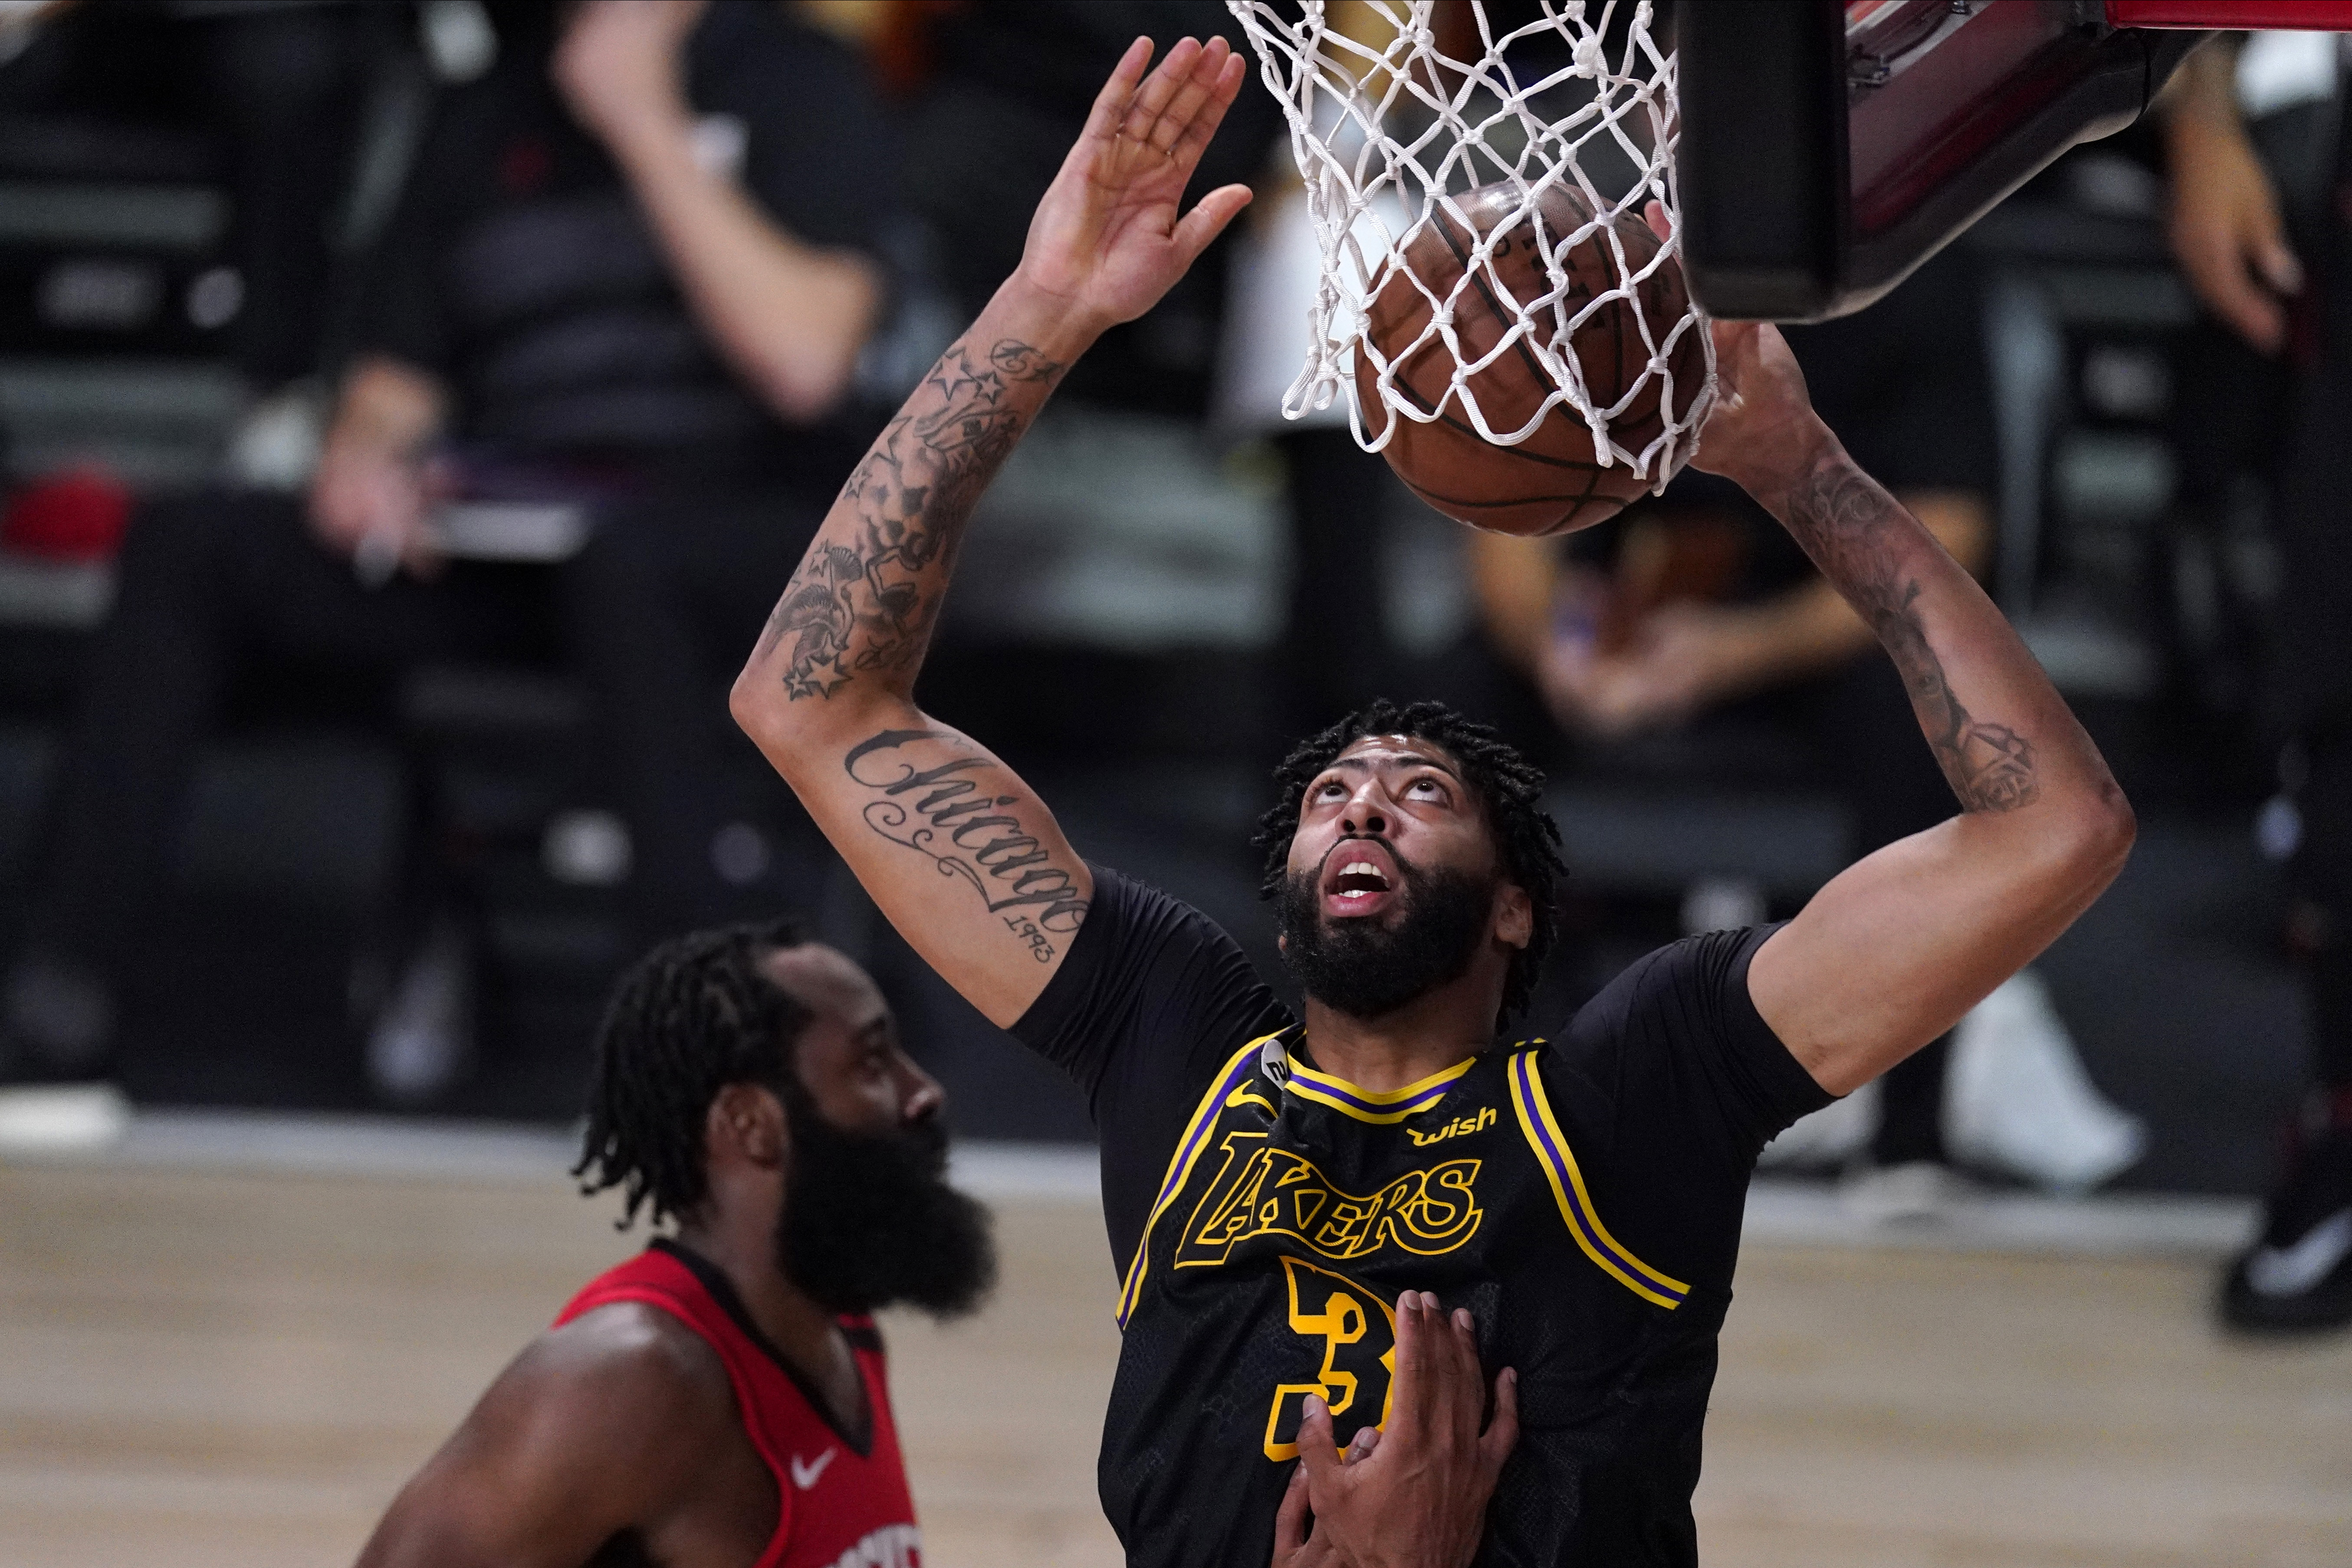 Nba Lakers Survive In Game 2 Even Series With Rockets